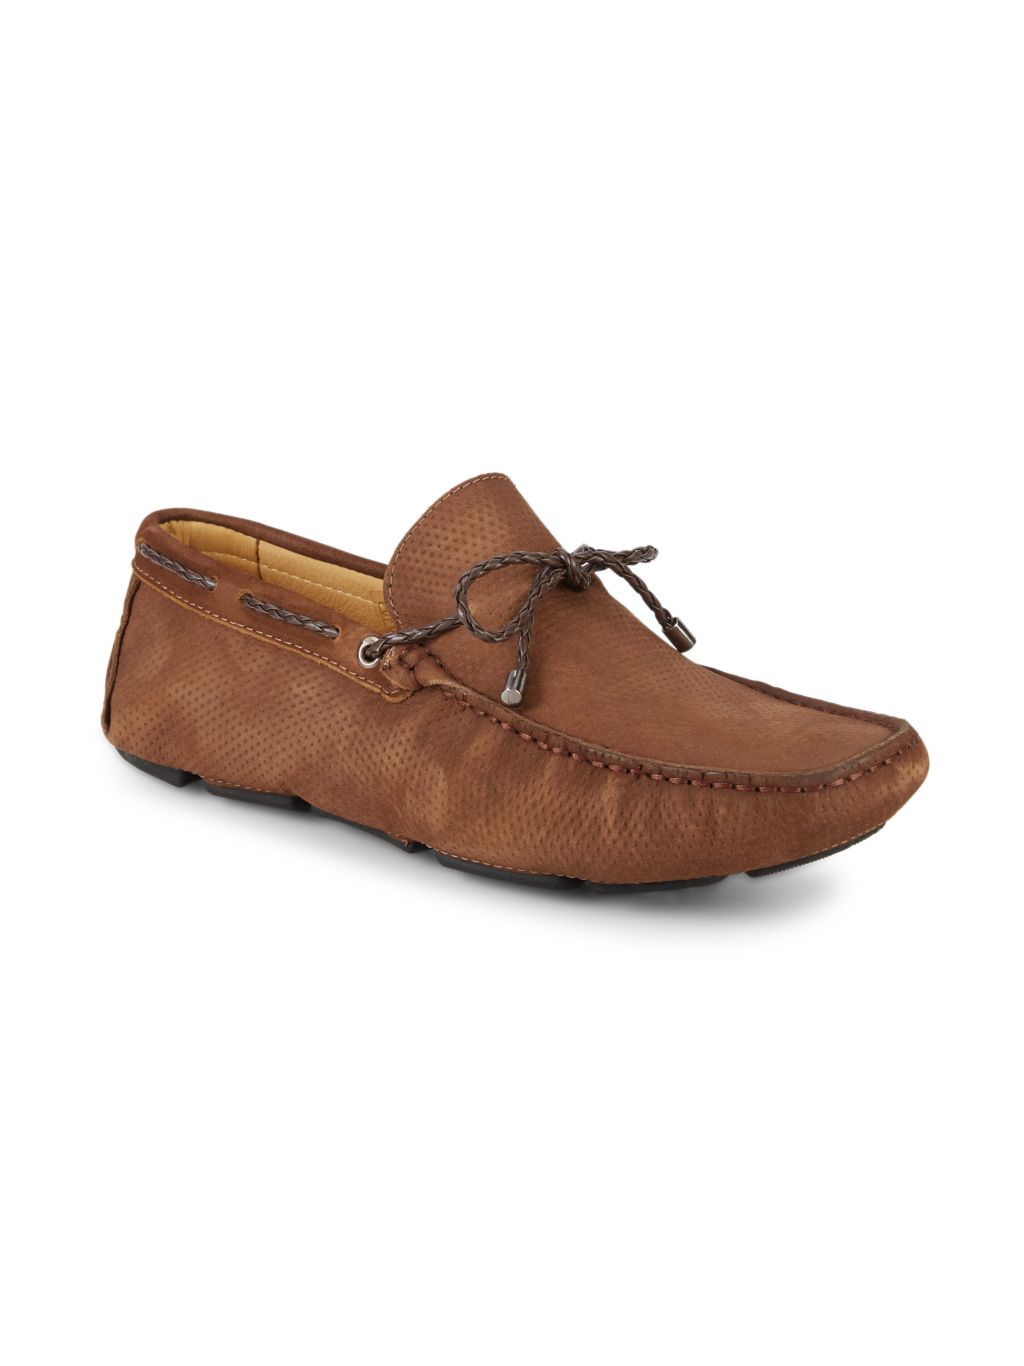 Saks Fifth Avenue Perforated Suede Driving Shoes